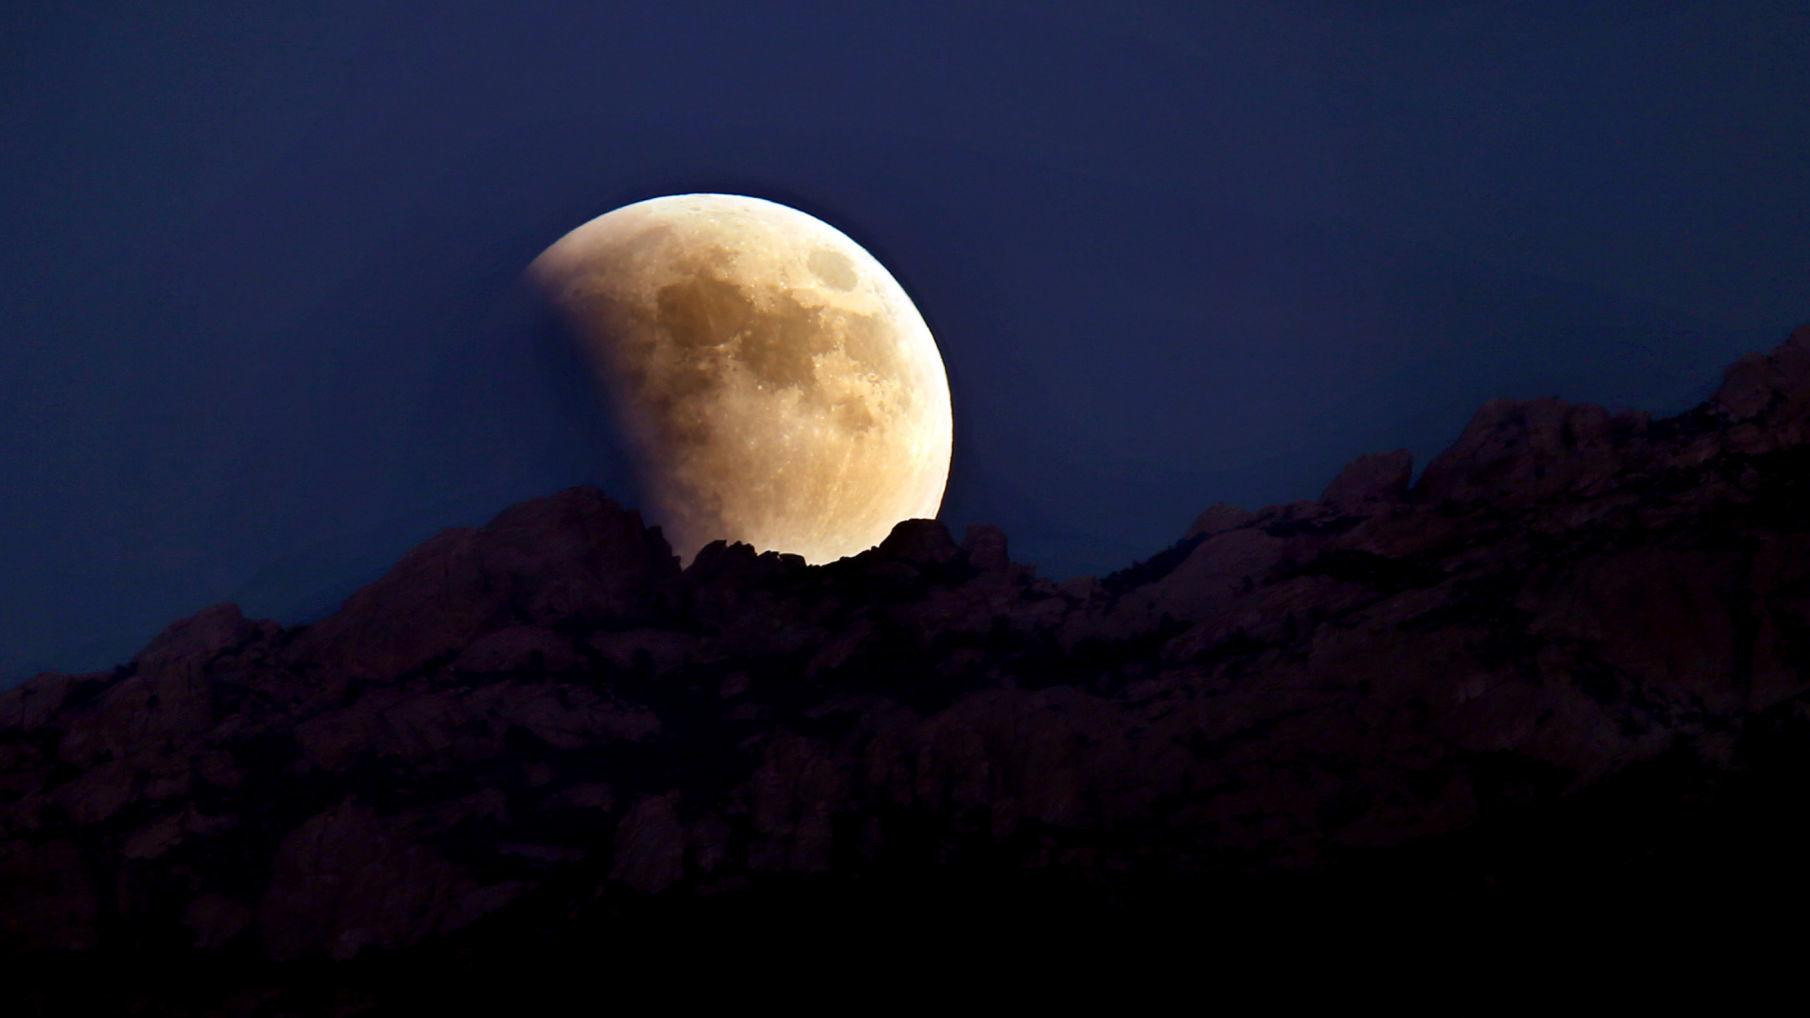 a total lunar eclipse like tonight s won t be visible in tucson again until 2021 local news tucson com a total lunar eclipse like tonight s